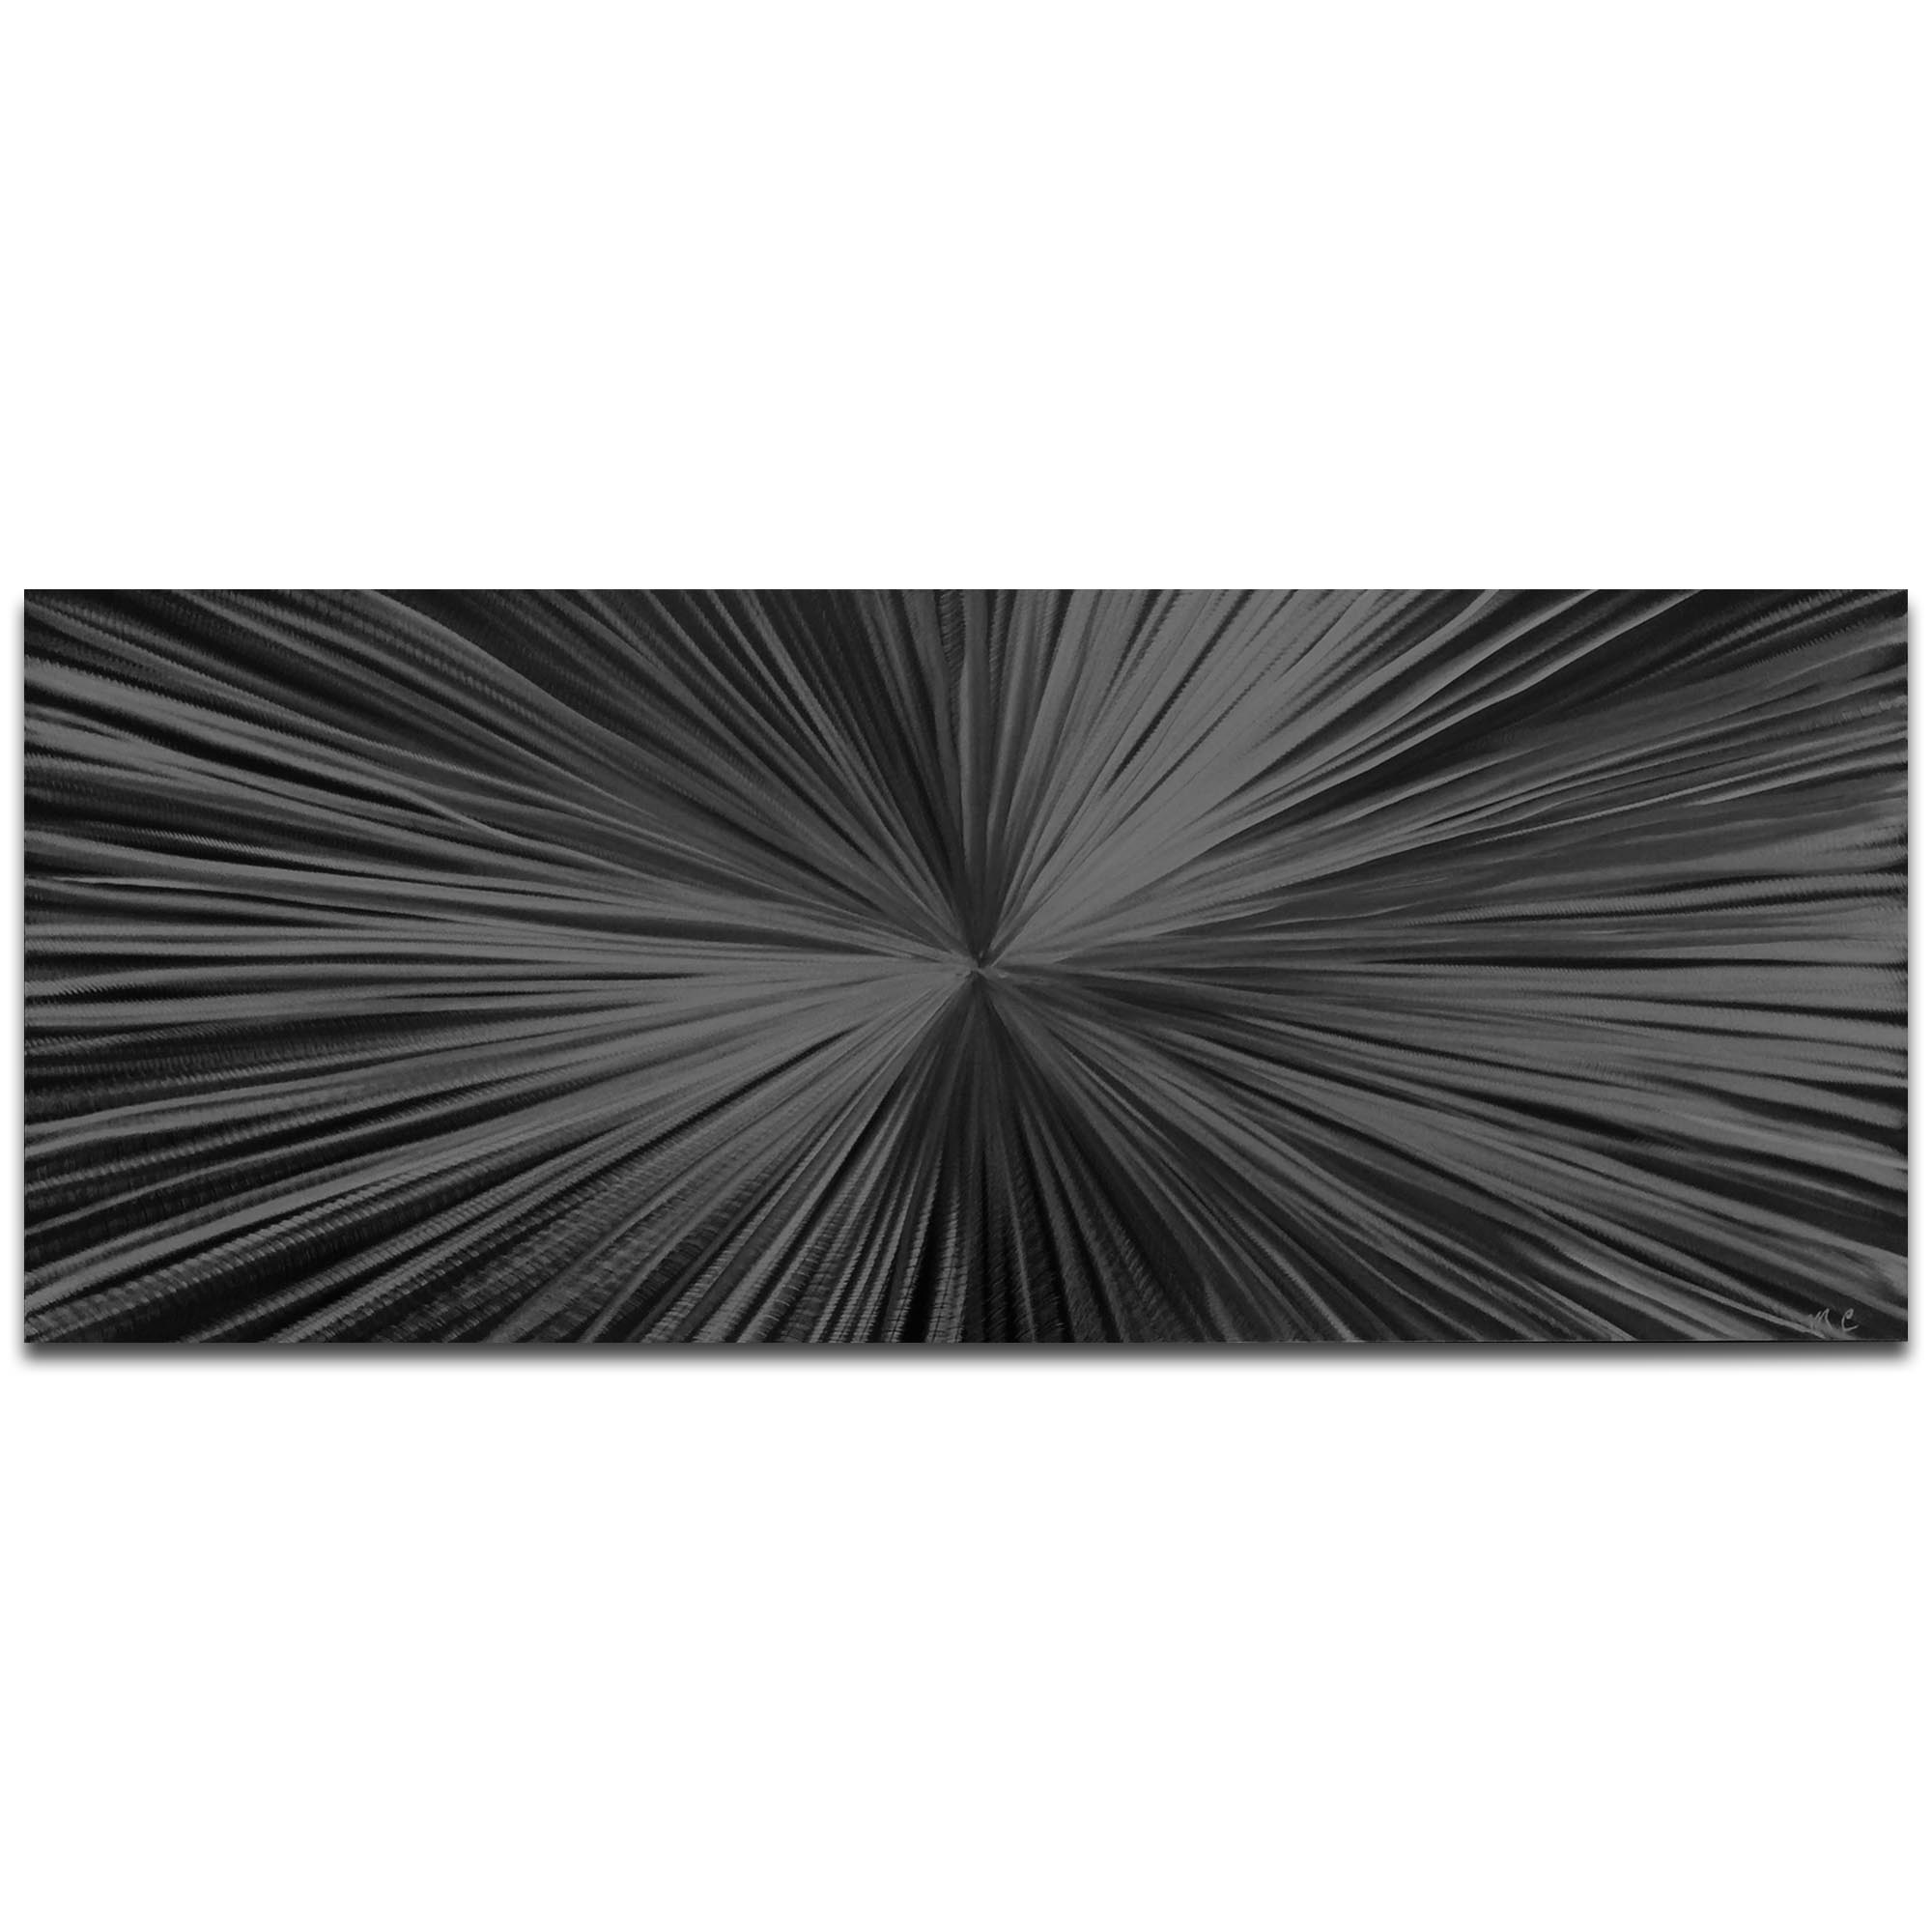 Helena Martin 'Starburst Black' 60in x 24in Original Abstract Art on Ground and Painted Metal